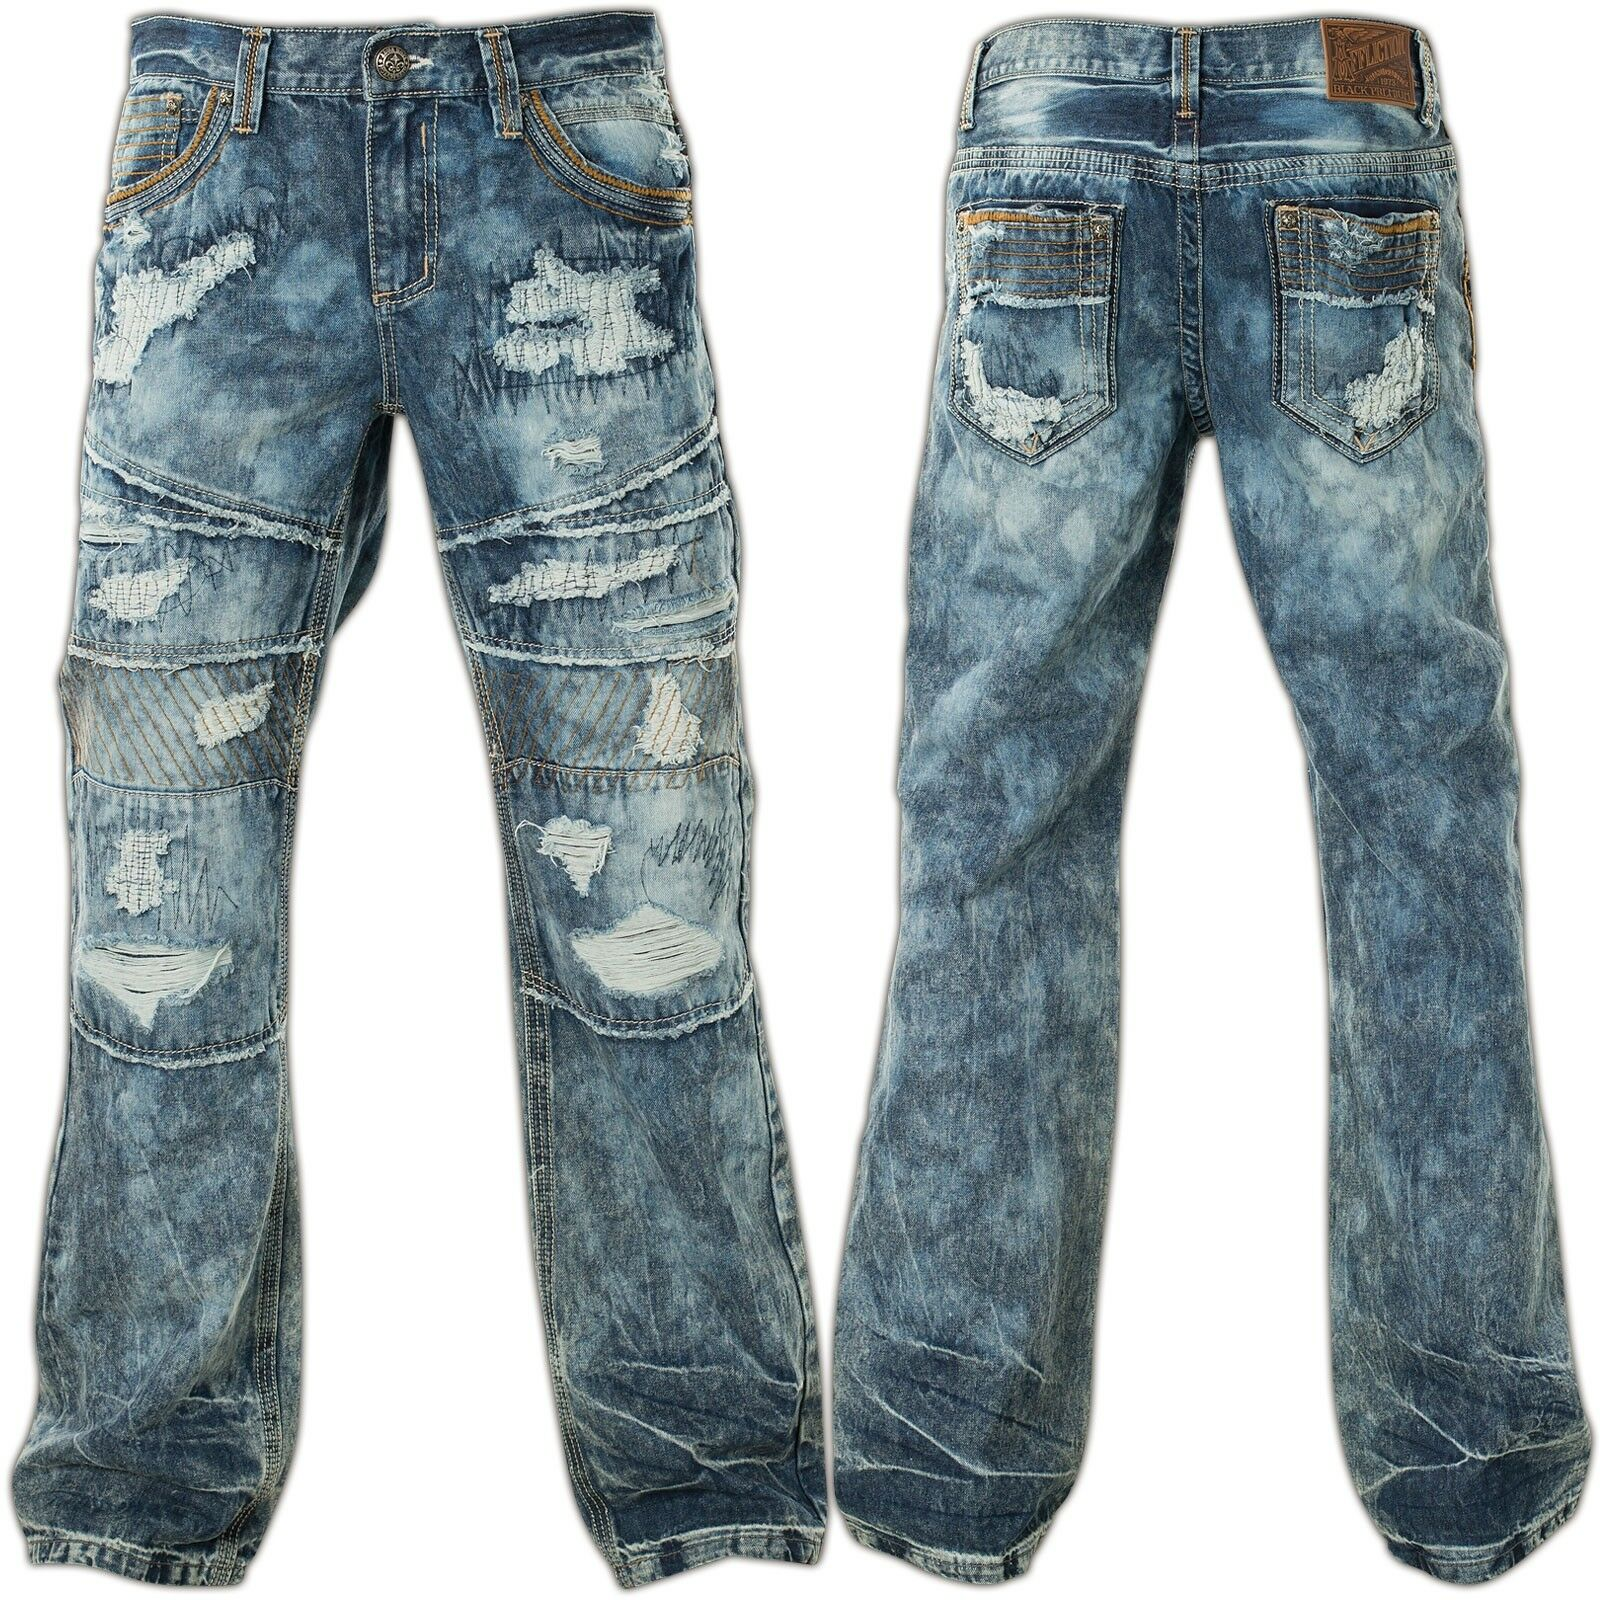 Affliction Jeans Blake Fallen Tampa bluee